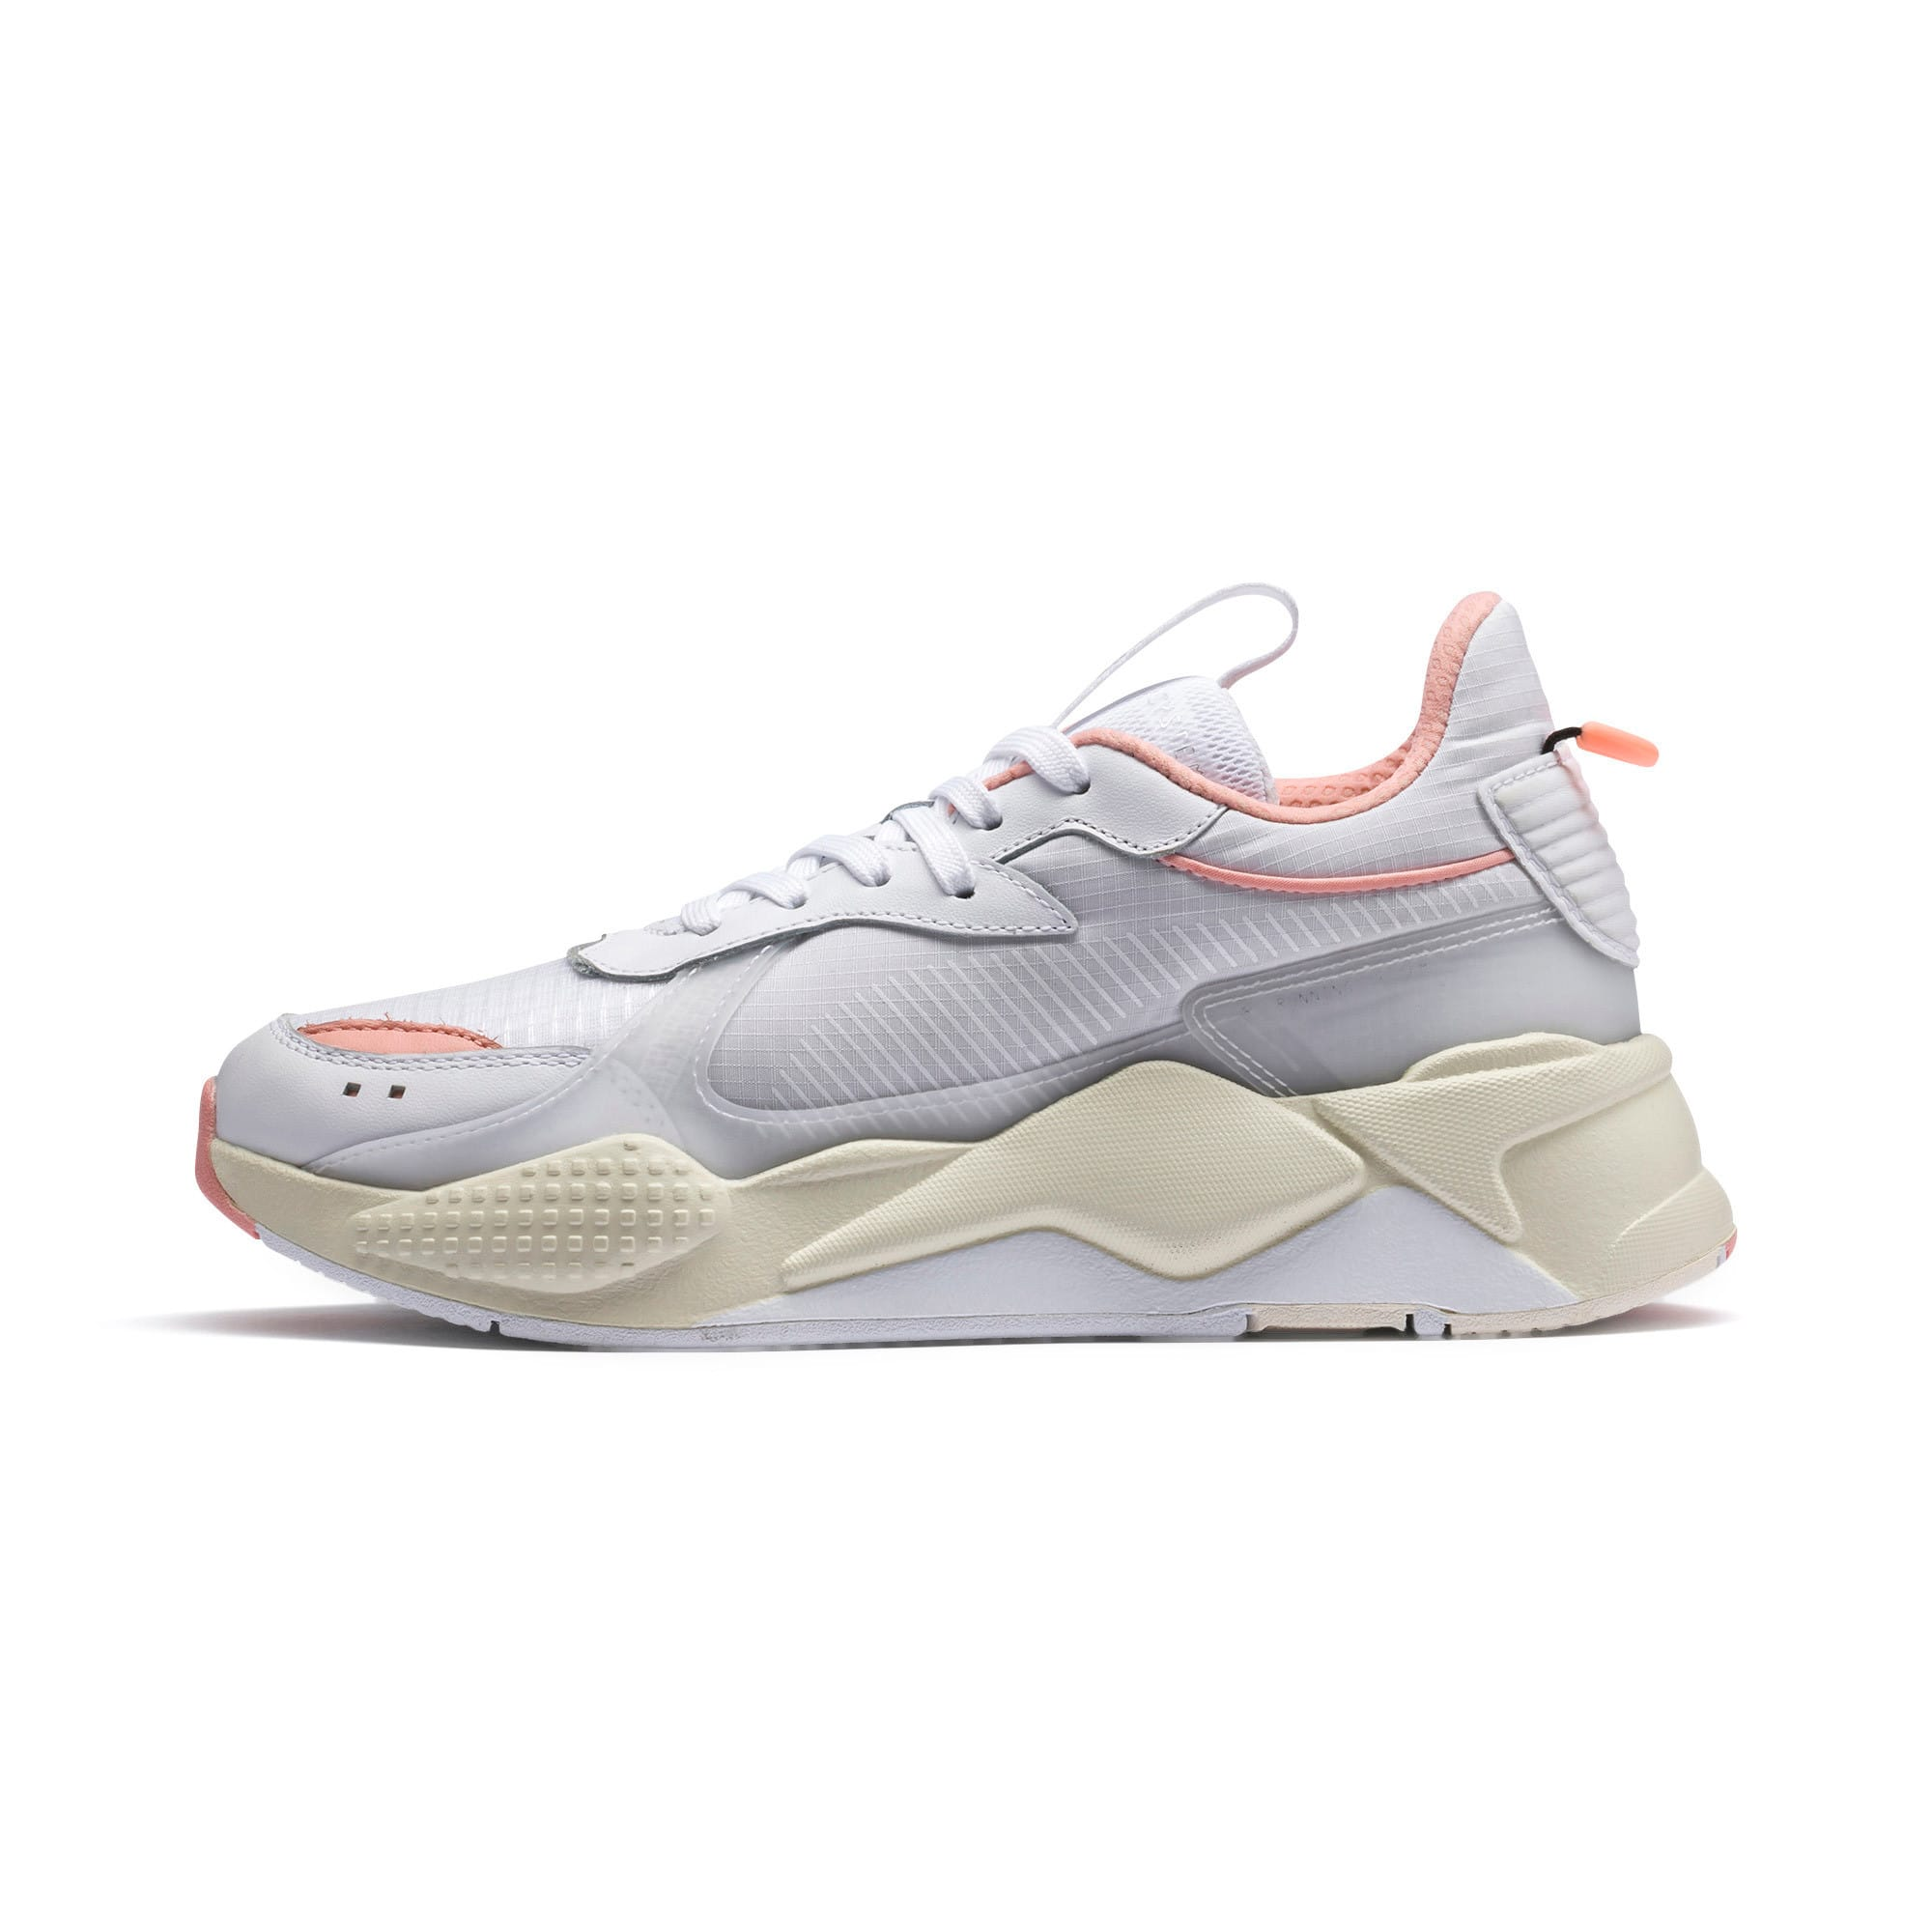 Thumbnail 1 of RS-X TECH Sneakers, Puma White-Peach Bud, medium